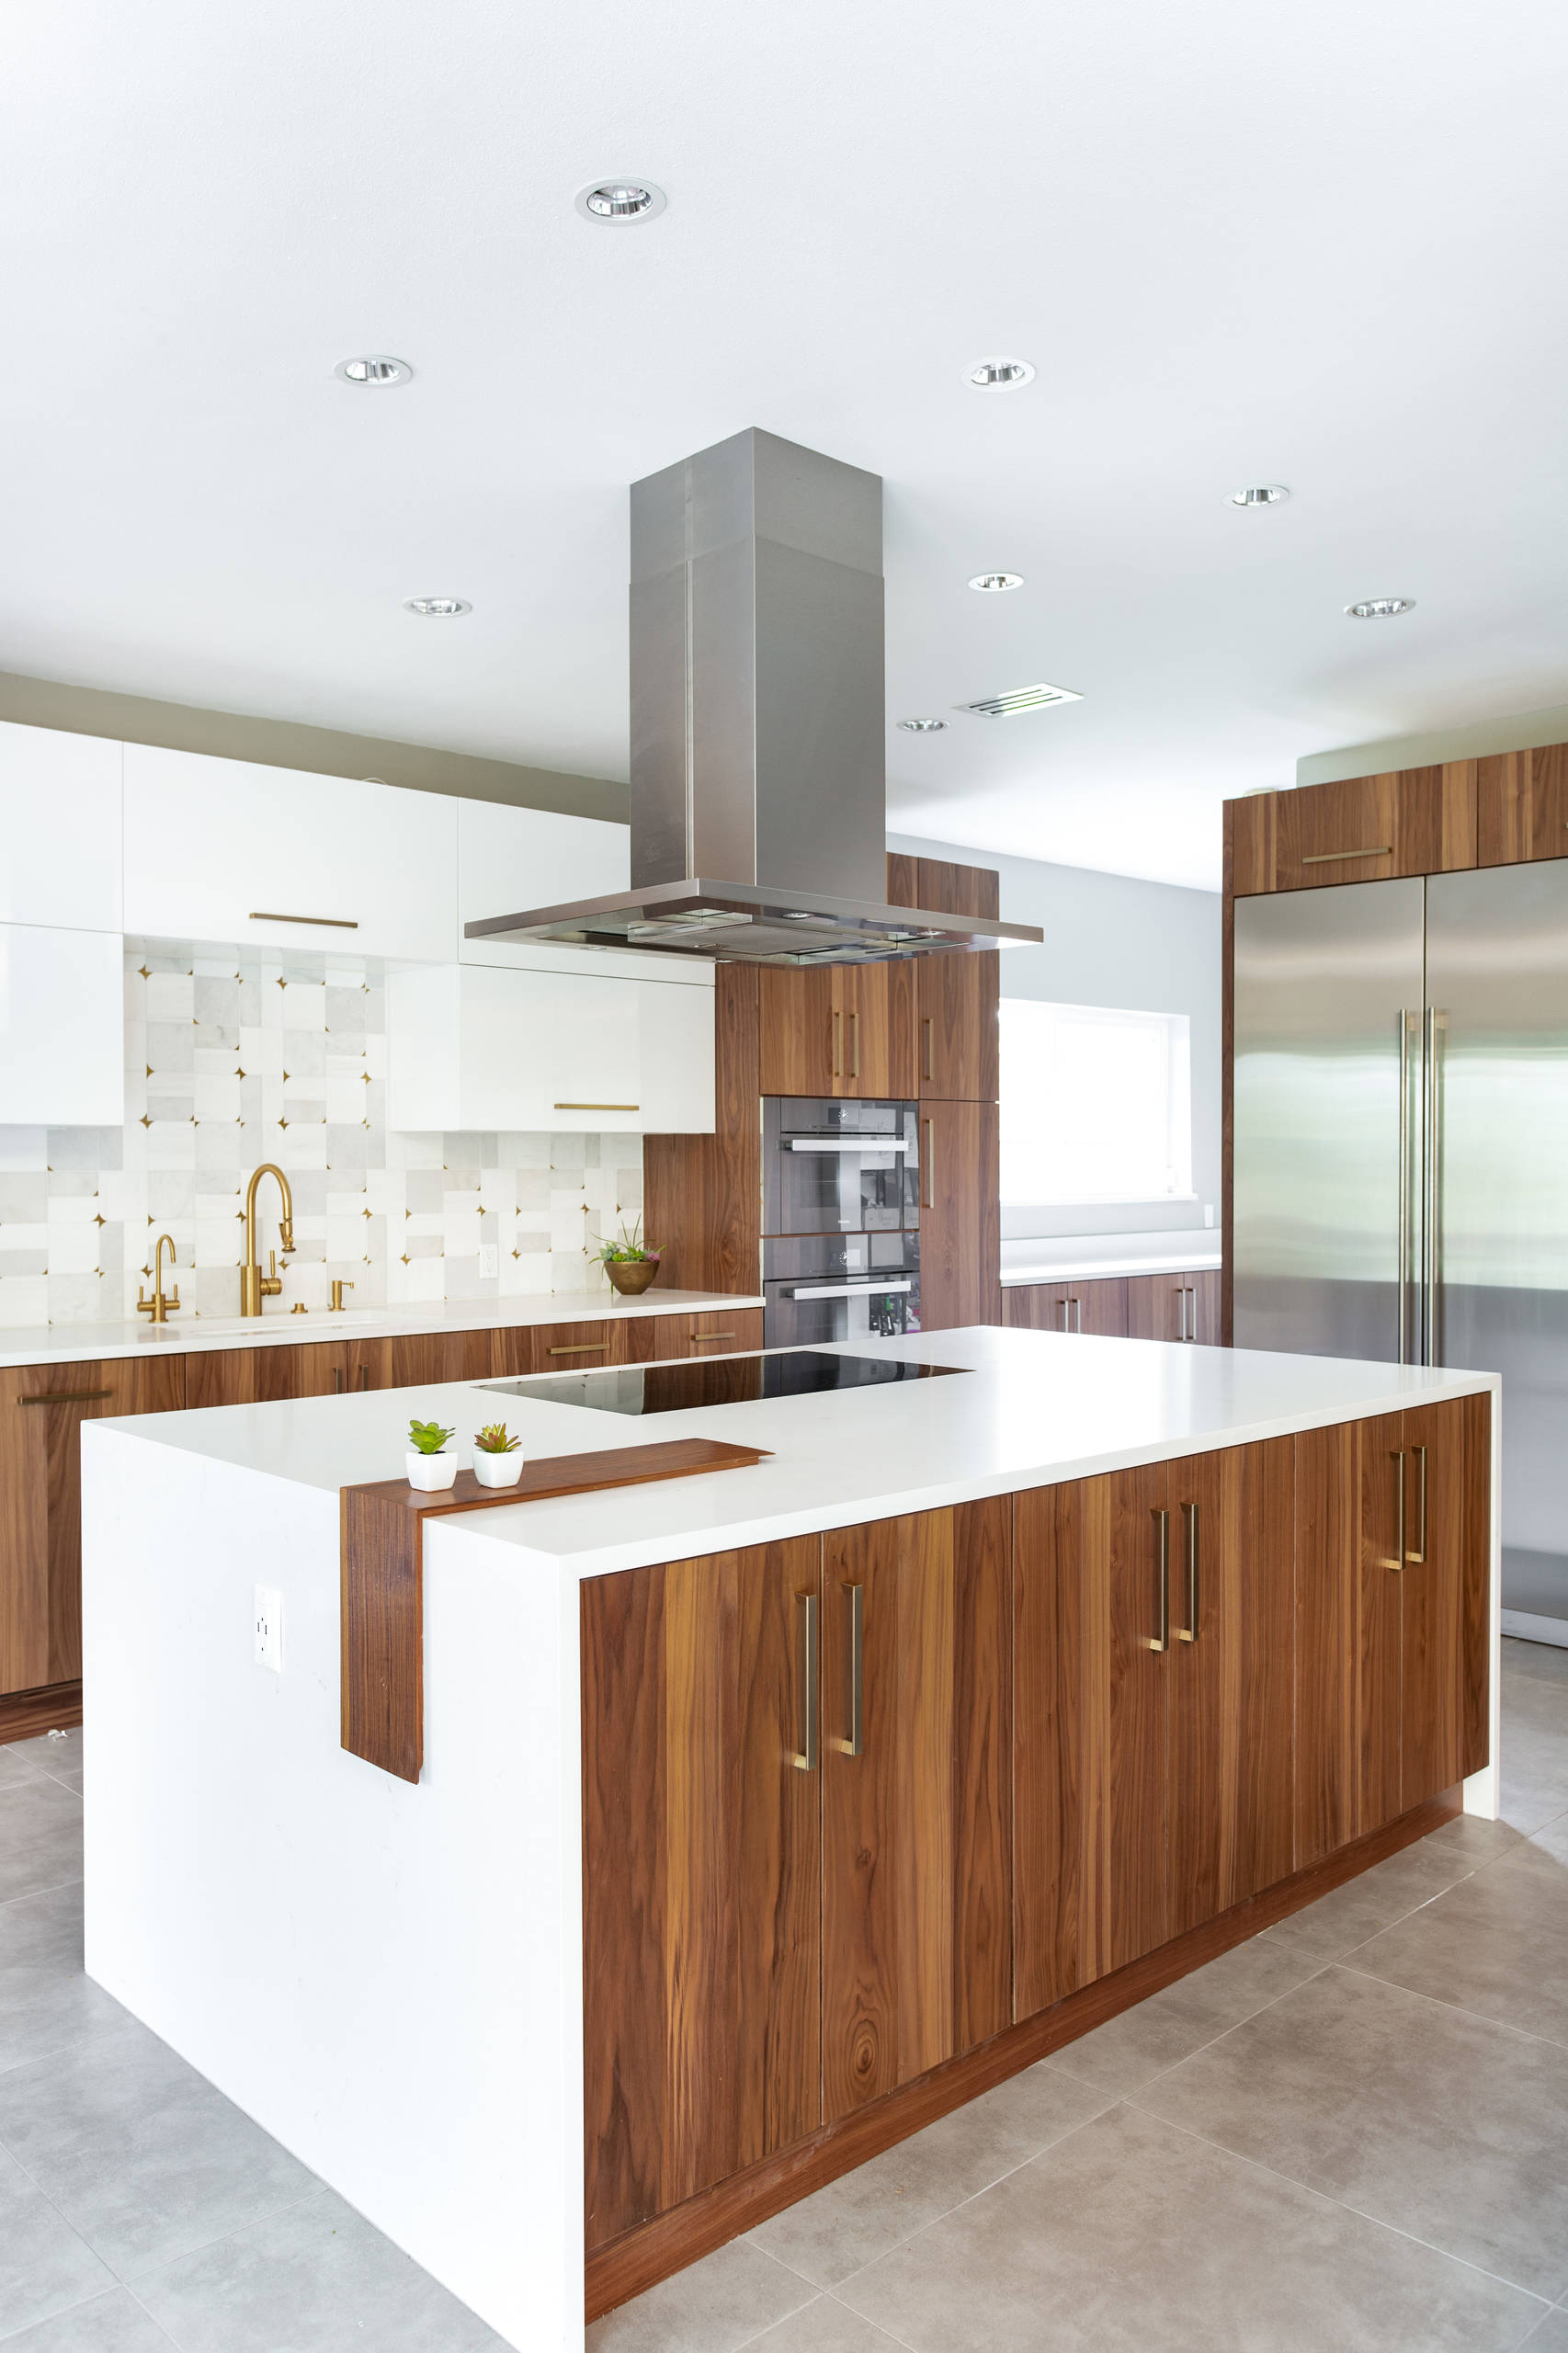 11 Beautiful L-Shaped Kitchen Pictures & Ideas - January, 11  Houzz